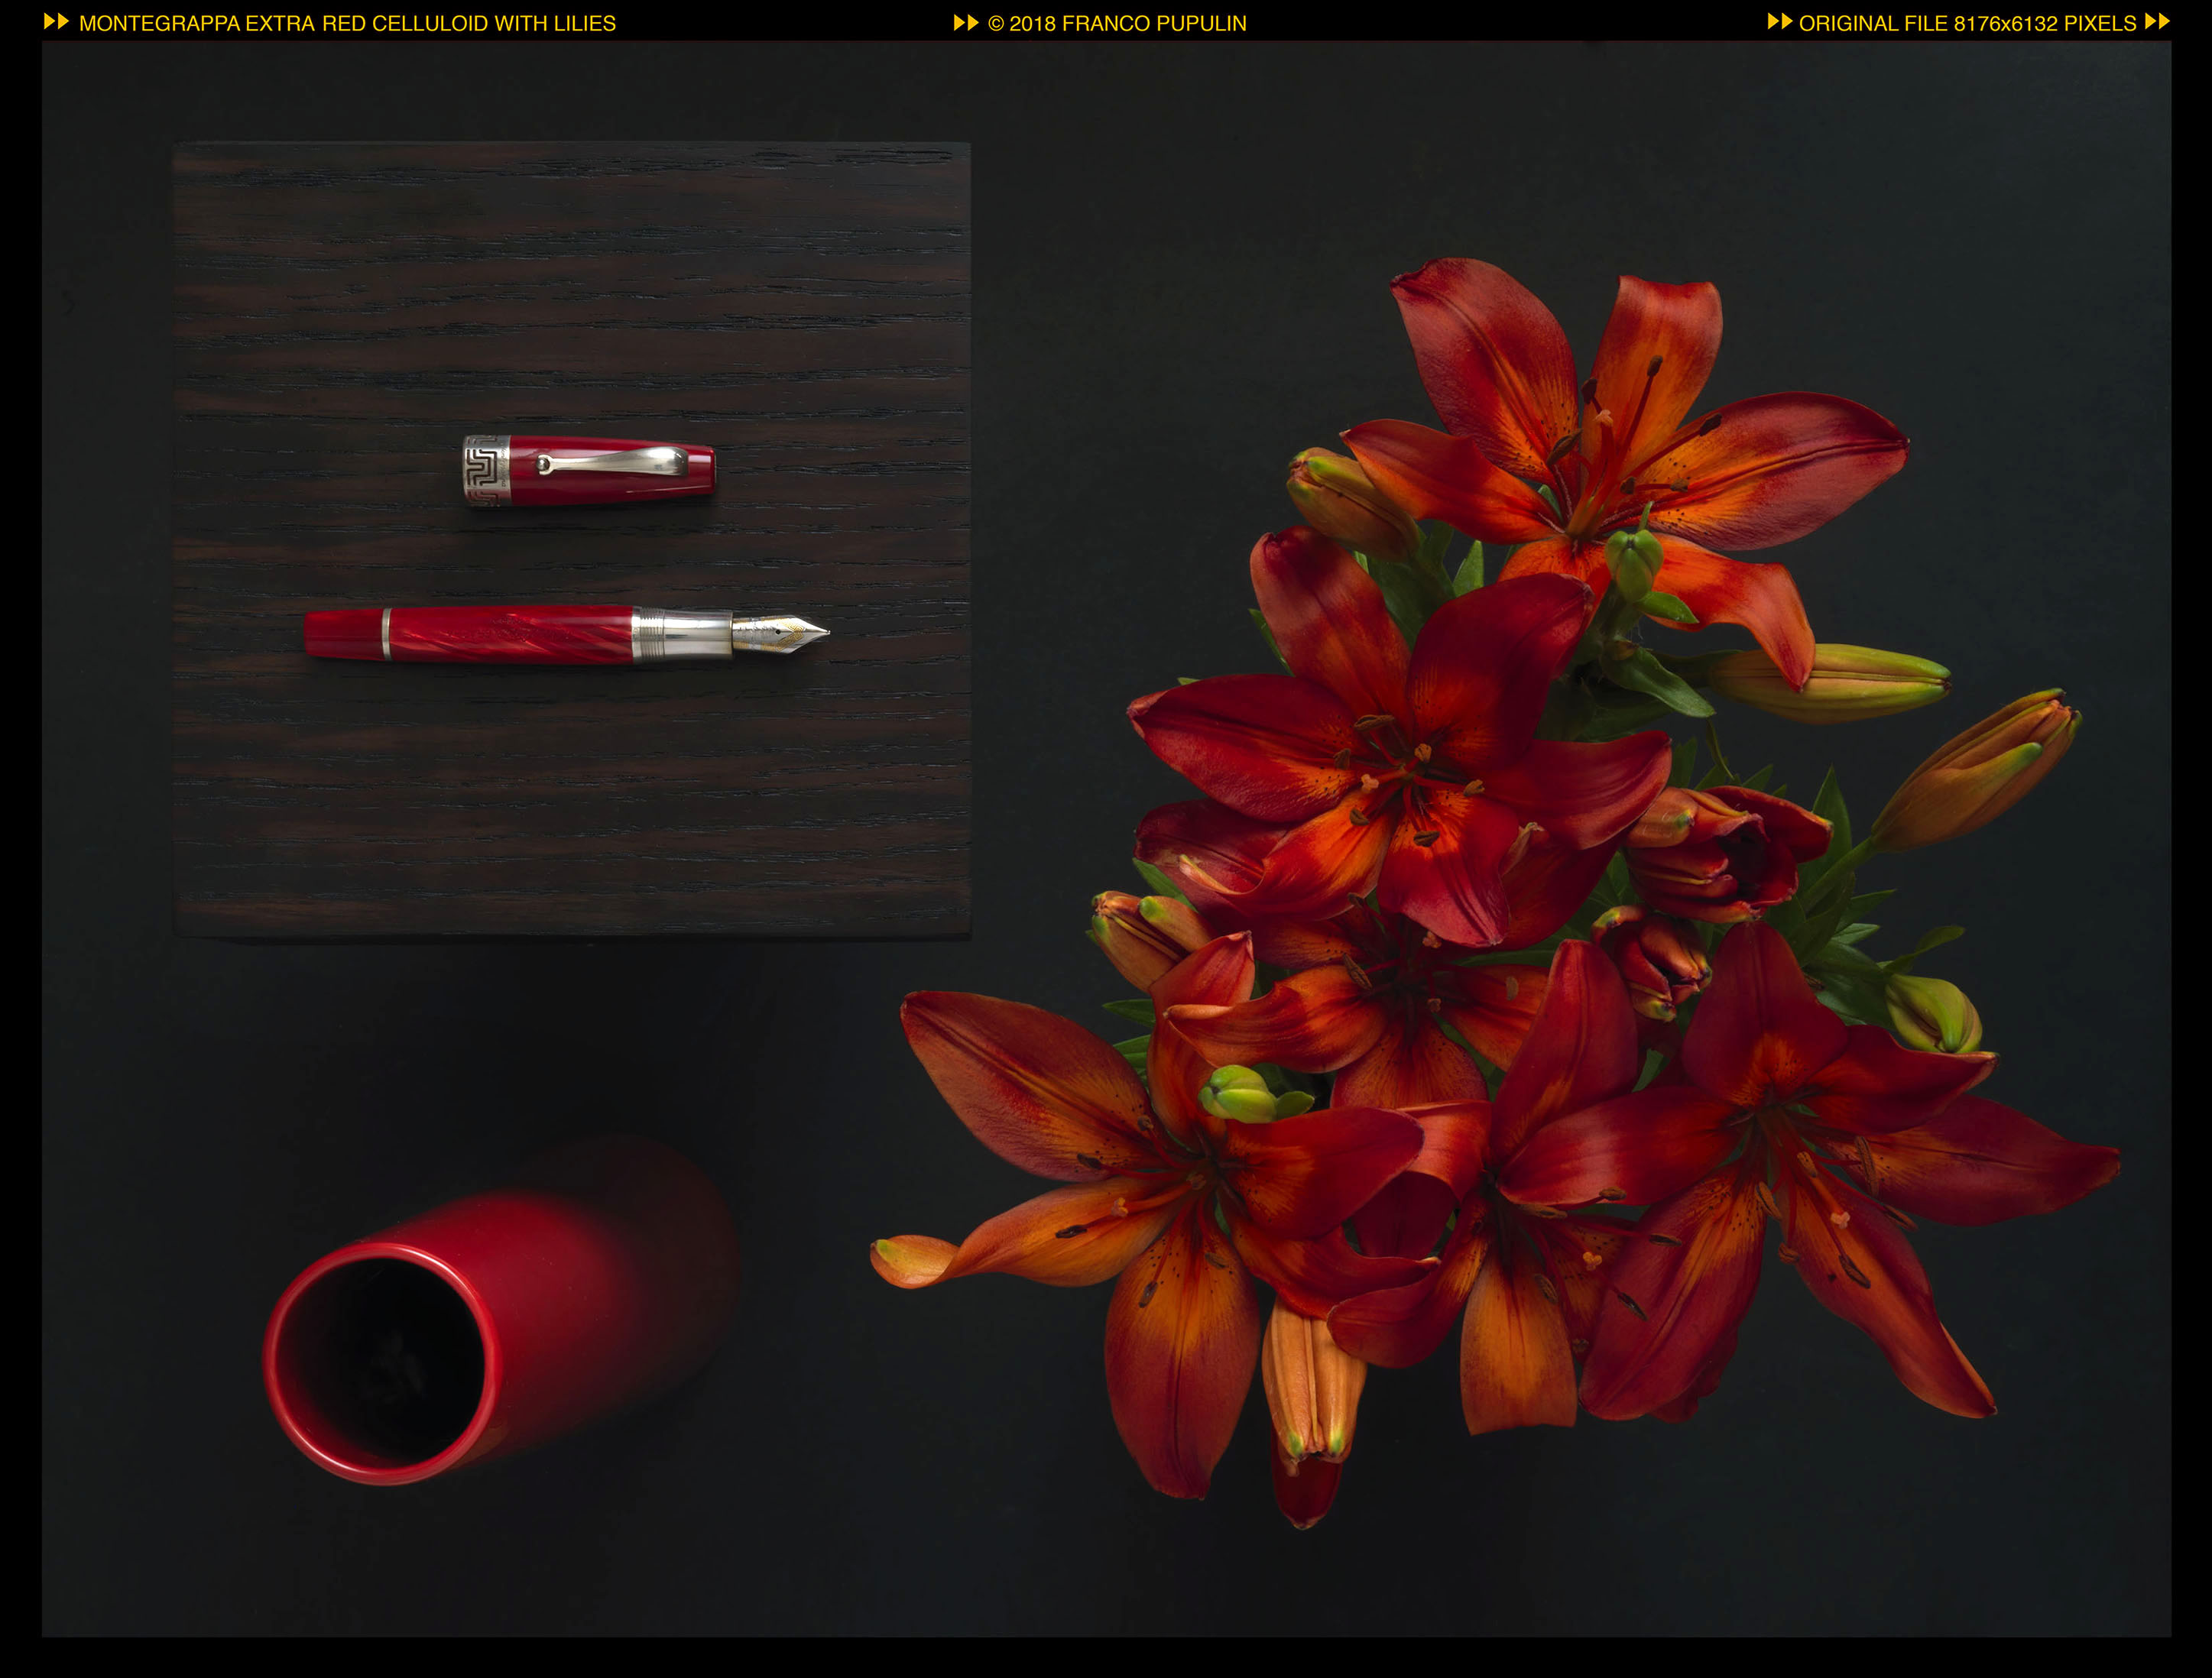 Montegrappa Extra red celluloid with lilies (1).jpg